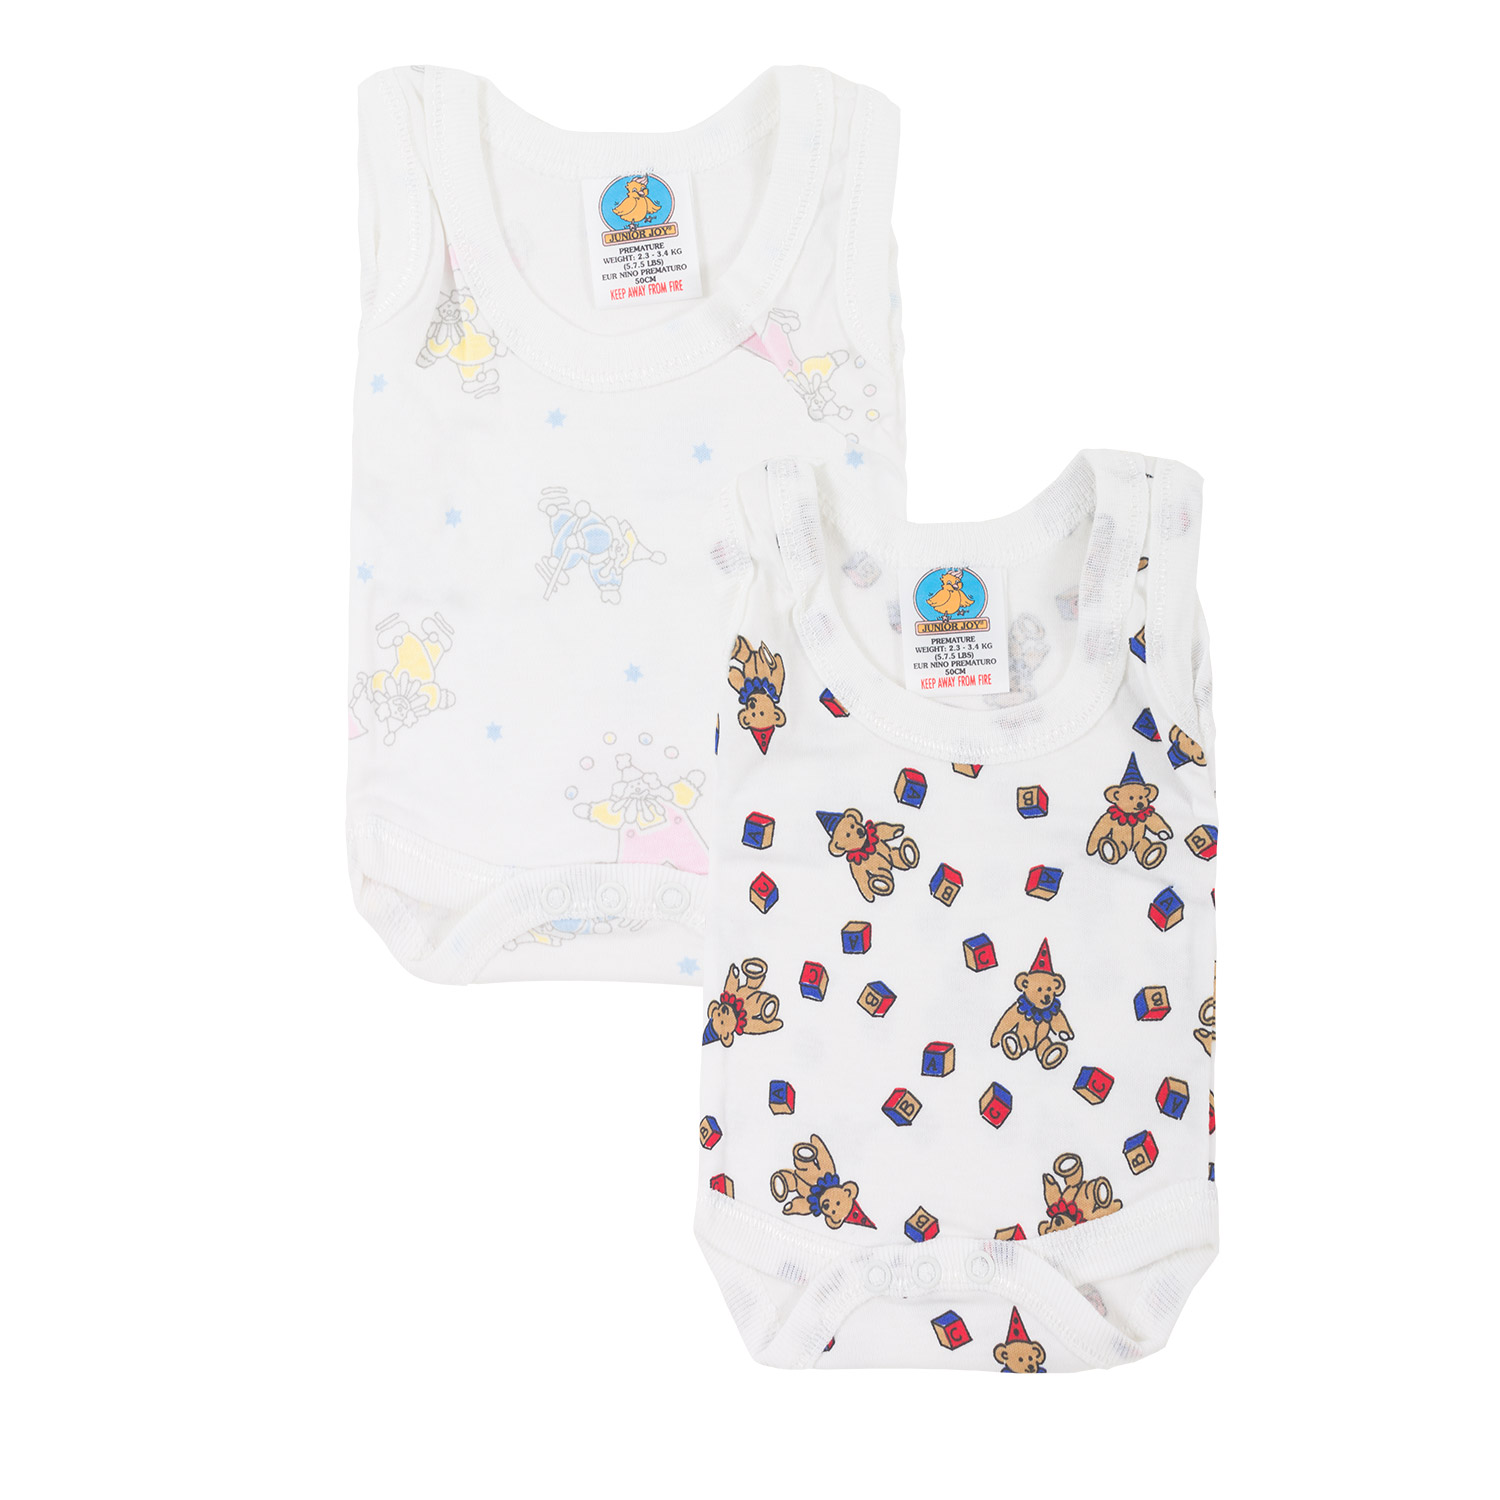 Junior Joy Vest Bodysuits - Printed